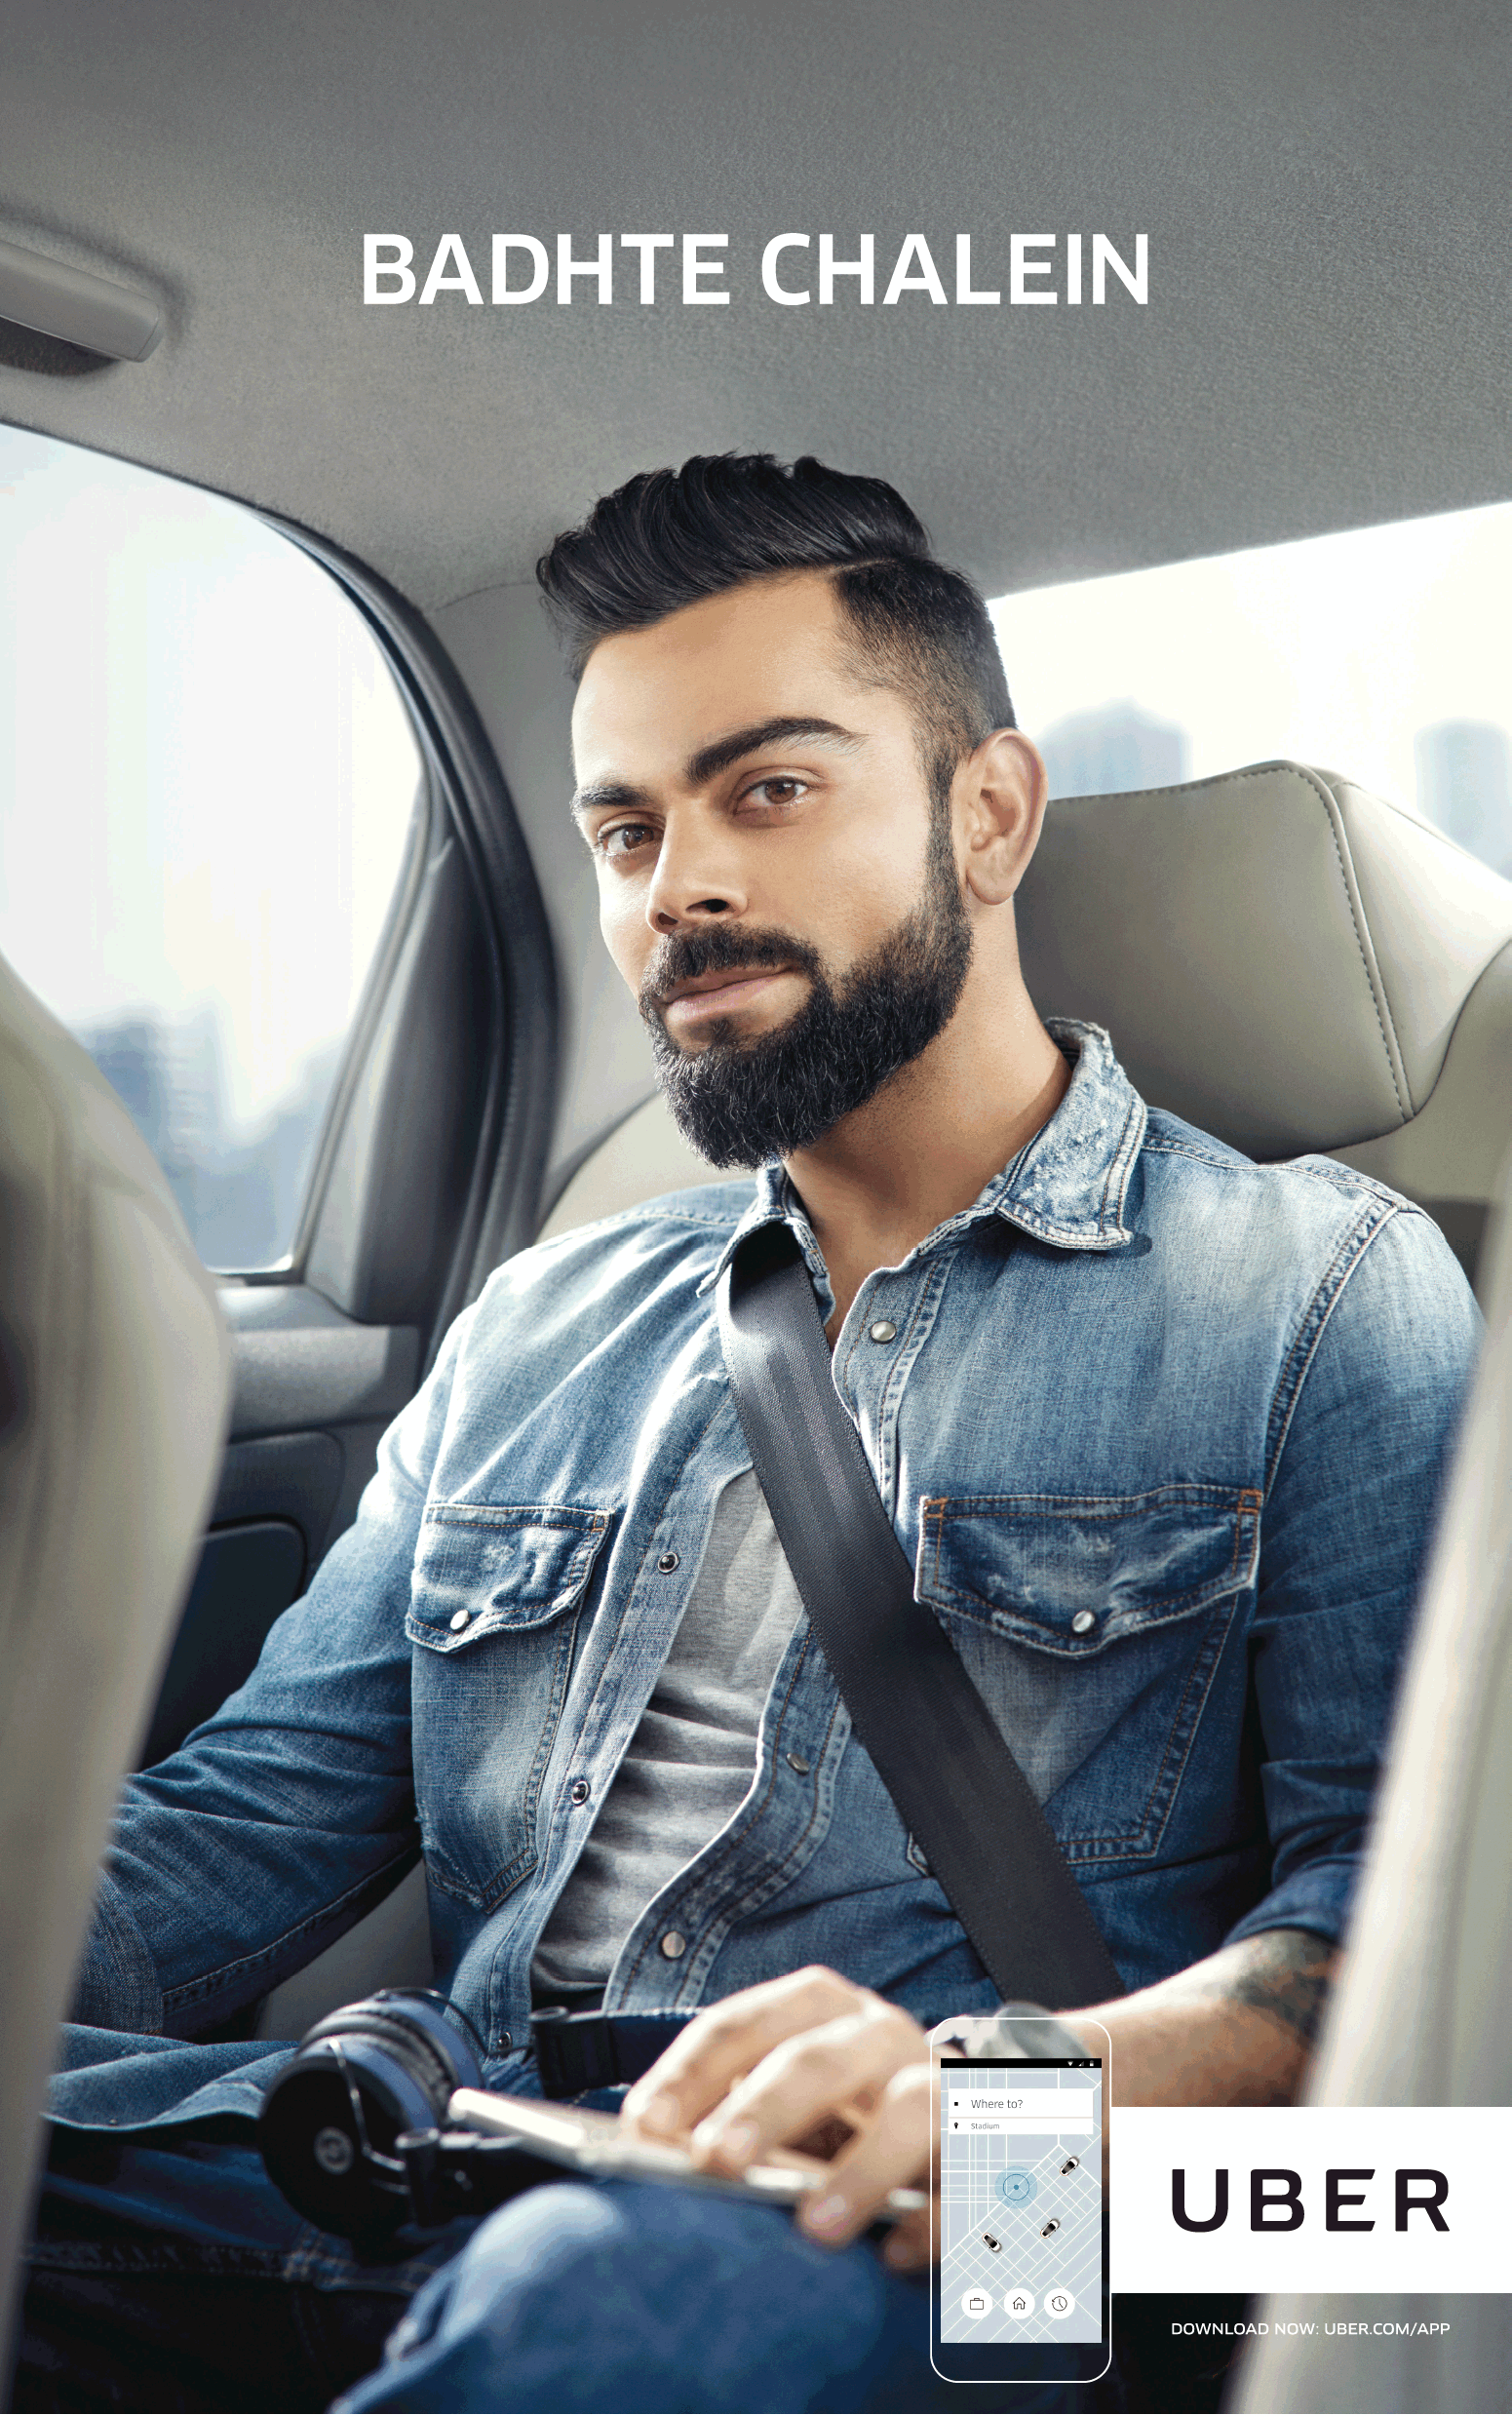 Uber Cabs Badhte Chalein Ad